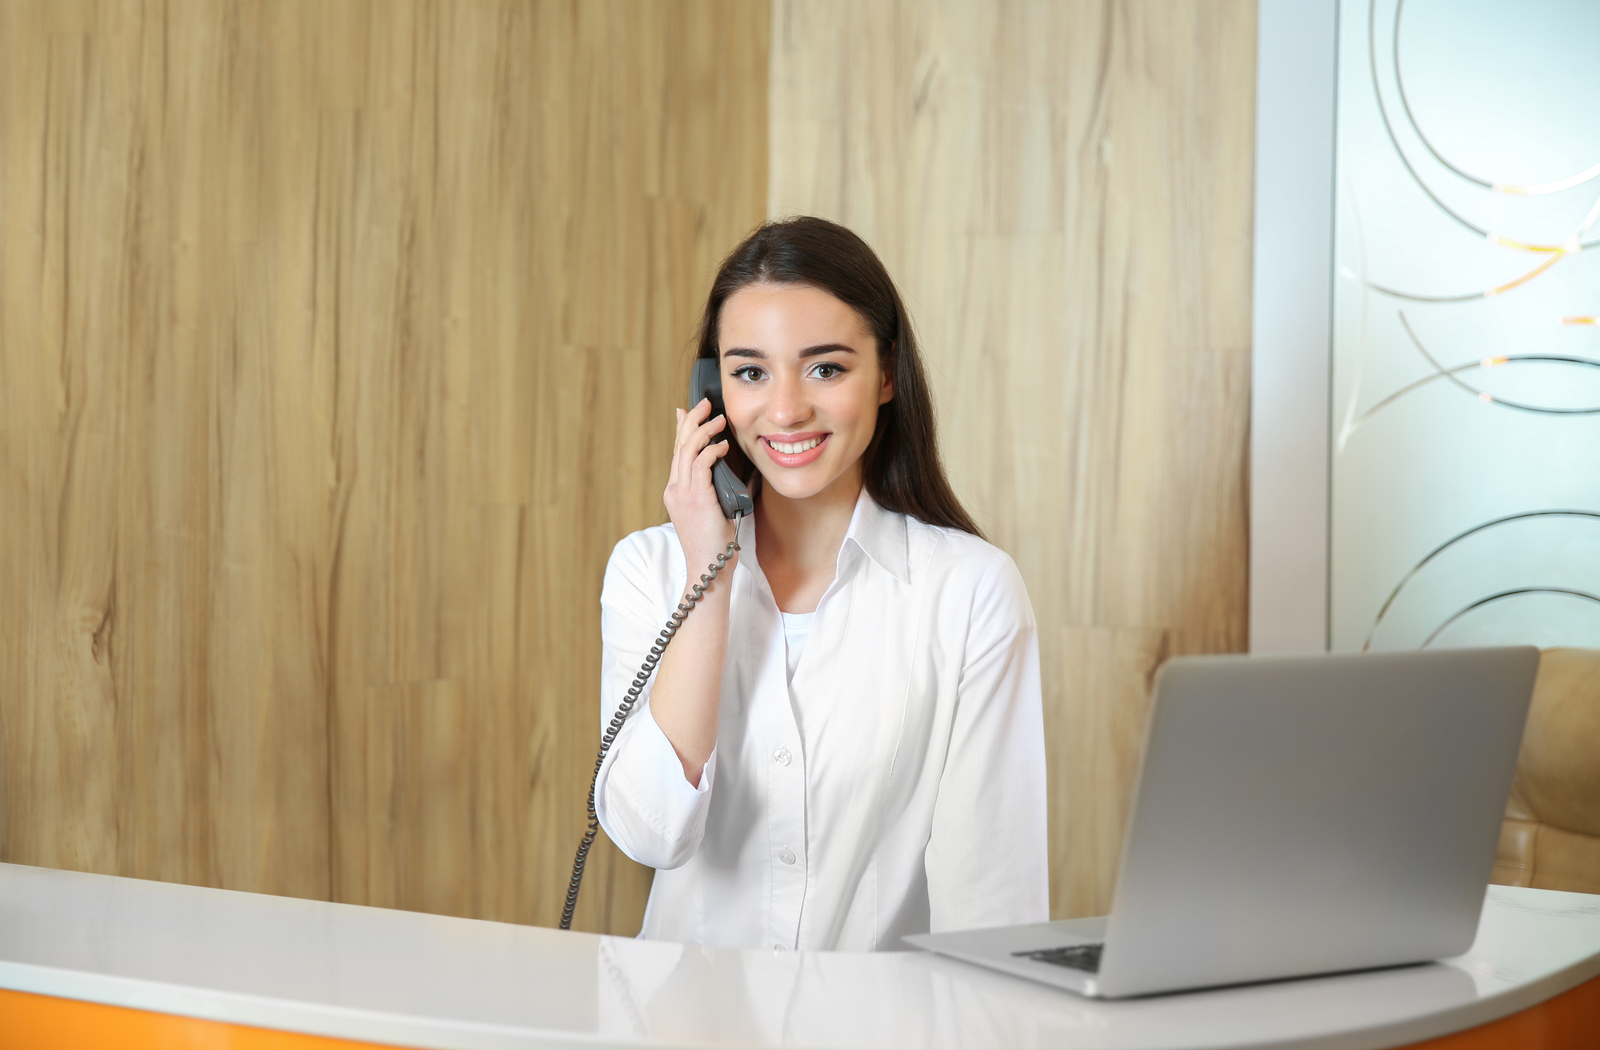 dental receptionist with dark hair smiling on the phone while she calls due patients